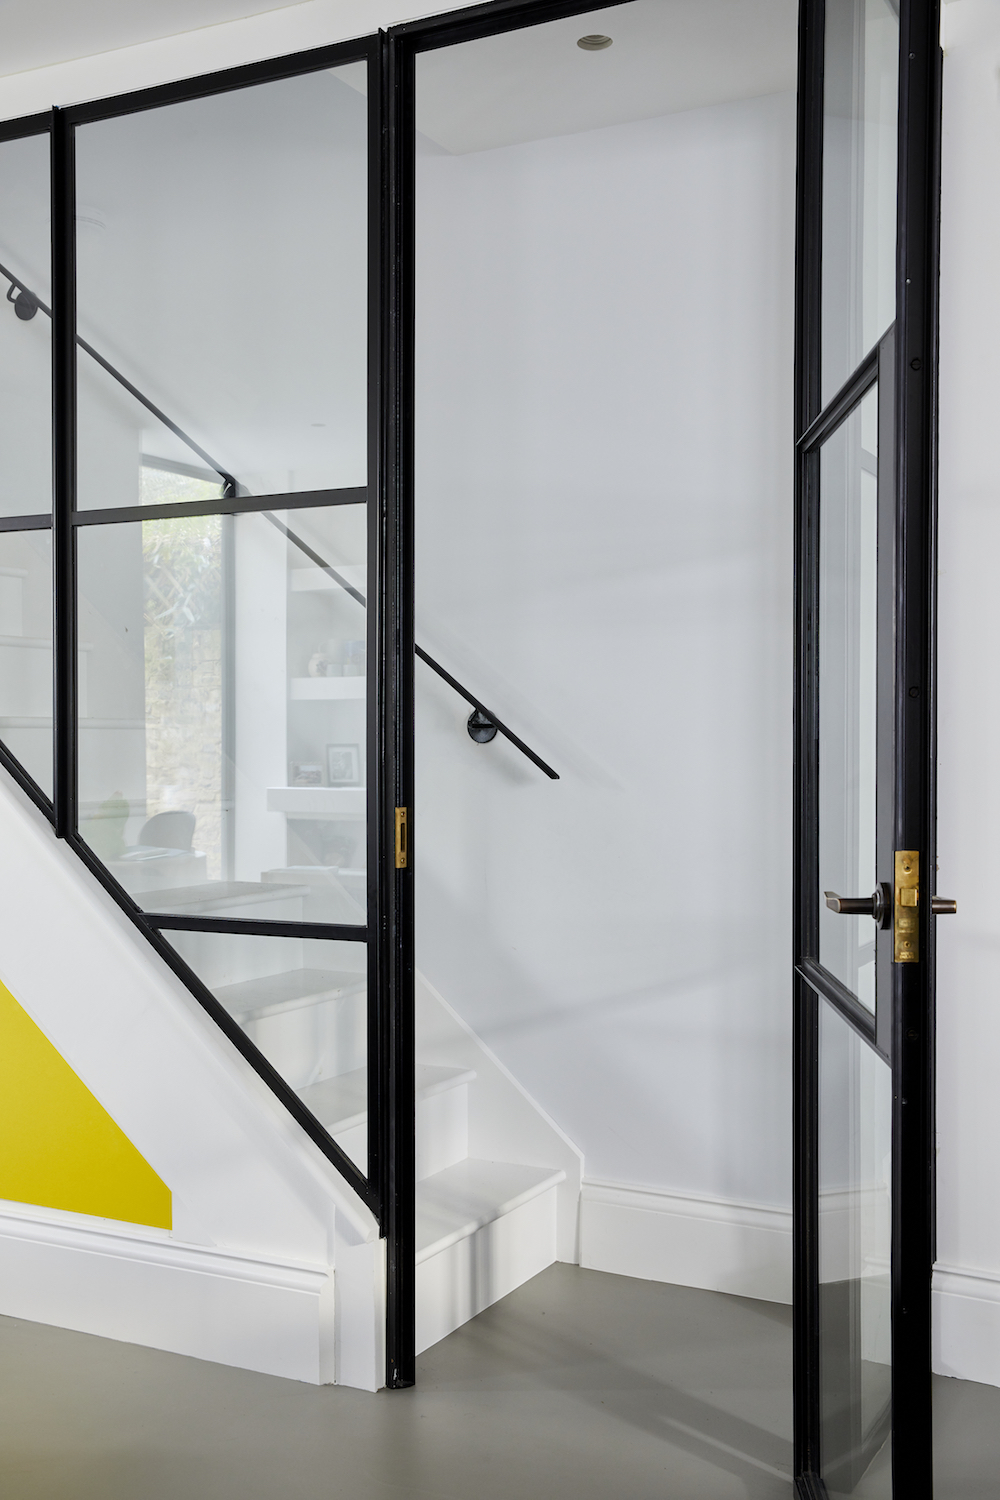 508-Bespoke-staicase-crittall-door-Greenwich-town-house-with-basement-renovation